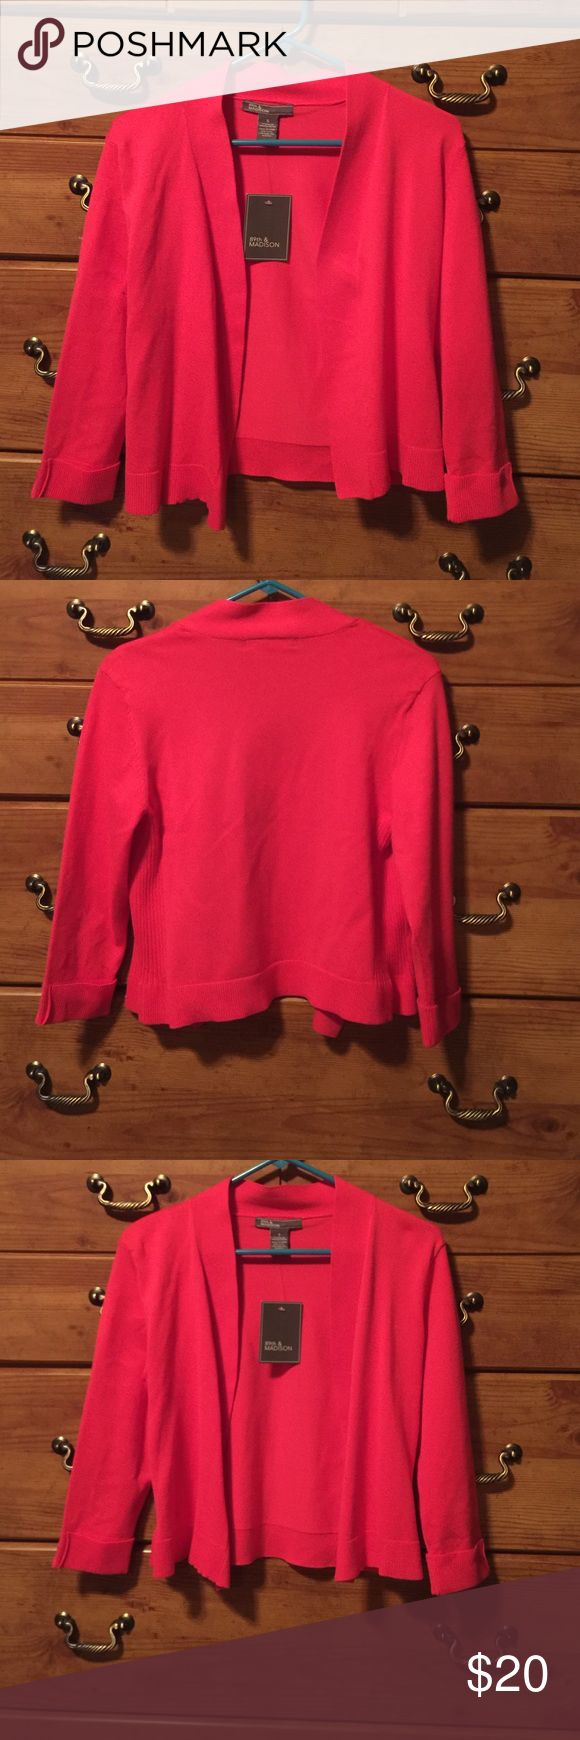 Pink sweater Pink cardigan sweater size small. NWT Sweaters Cardigans